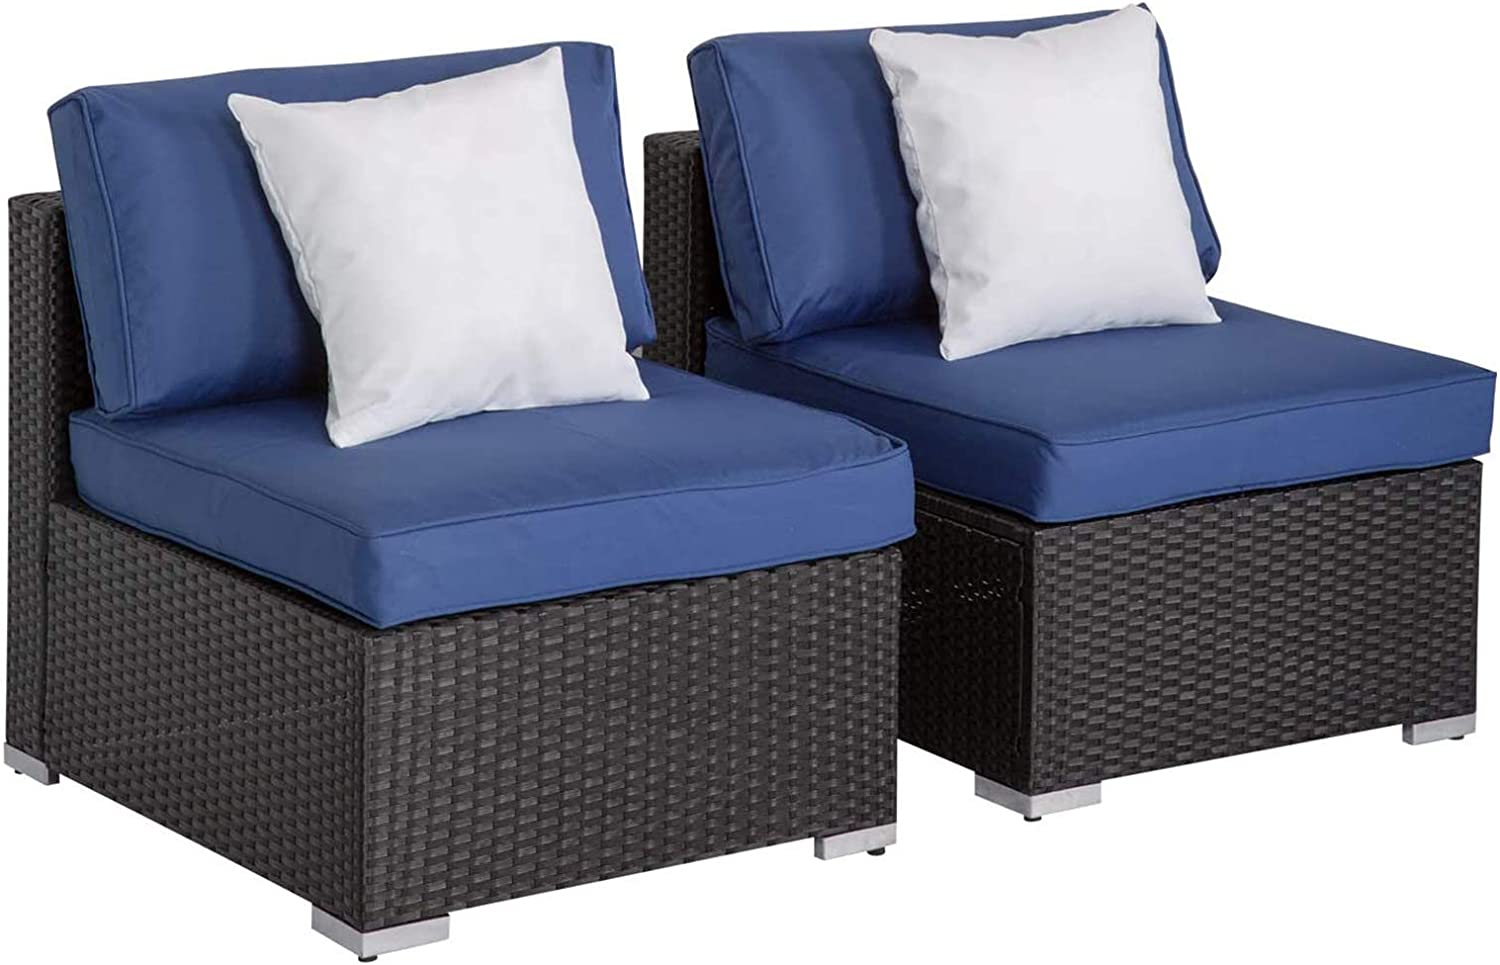 Peach Tree Outdoor Loveseat 2 PCs Direct sale of manufacturer Set Wicker Ar Gifts Patio Furniture